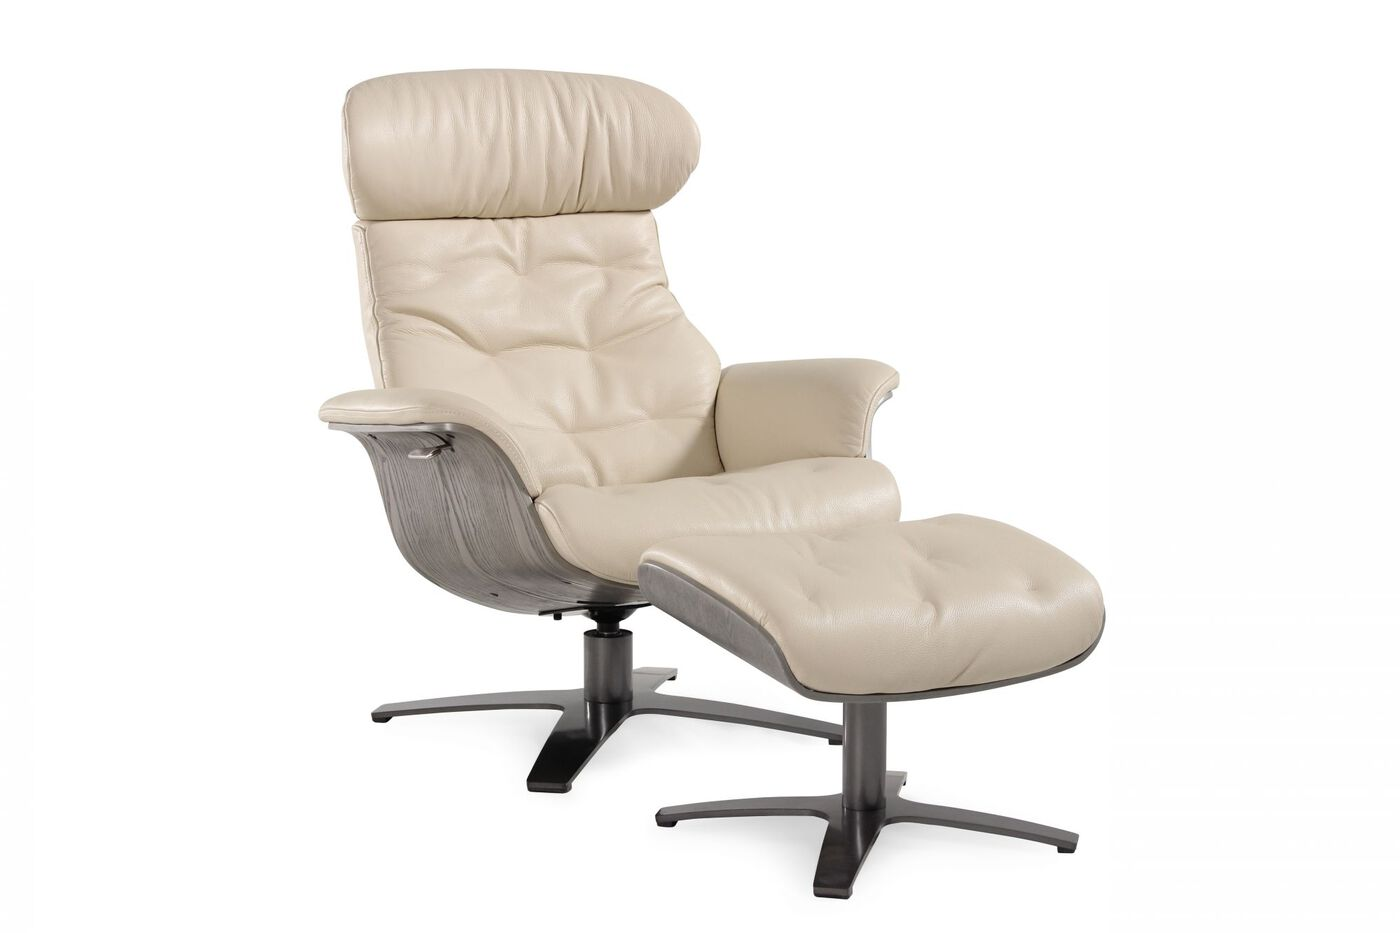 Contemporary Swivel Recliner and Ottoman in Cream | Mathis ...